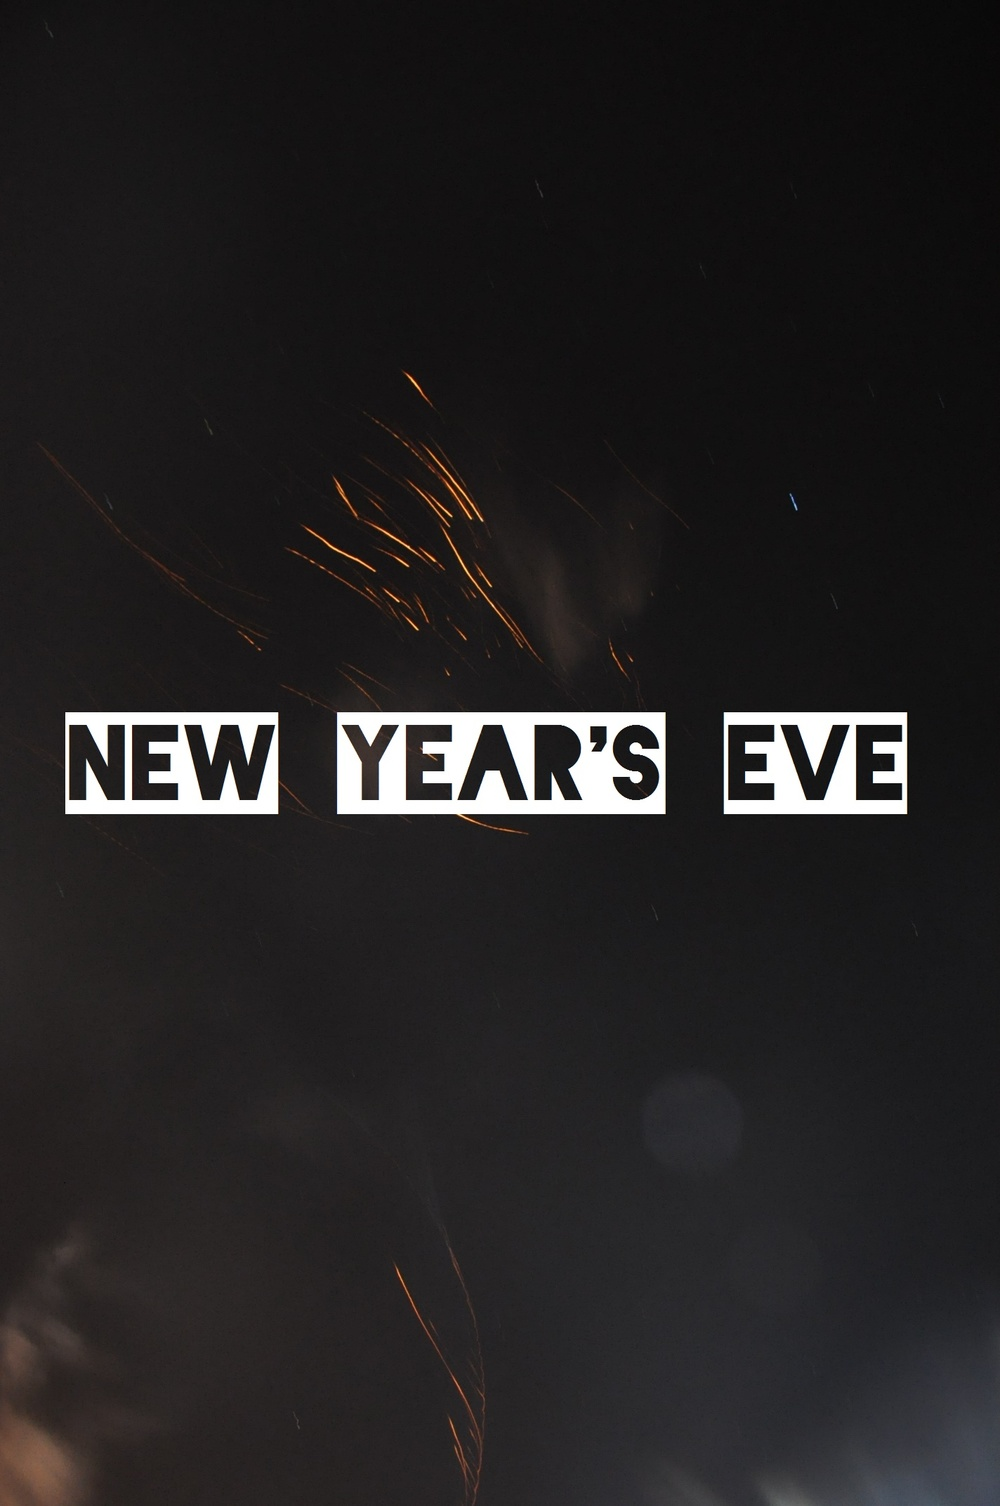 New Year's Eve 2015 – A spontaneous adventure to the beach to watch the fireworks display. A year of feeling alive, ending off with a bang! A Lovely Space | alovelyspace.com